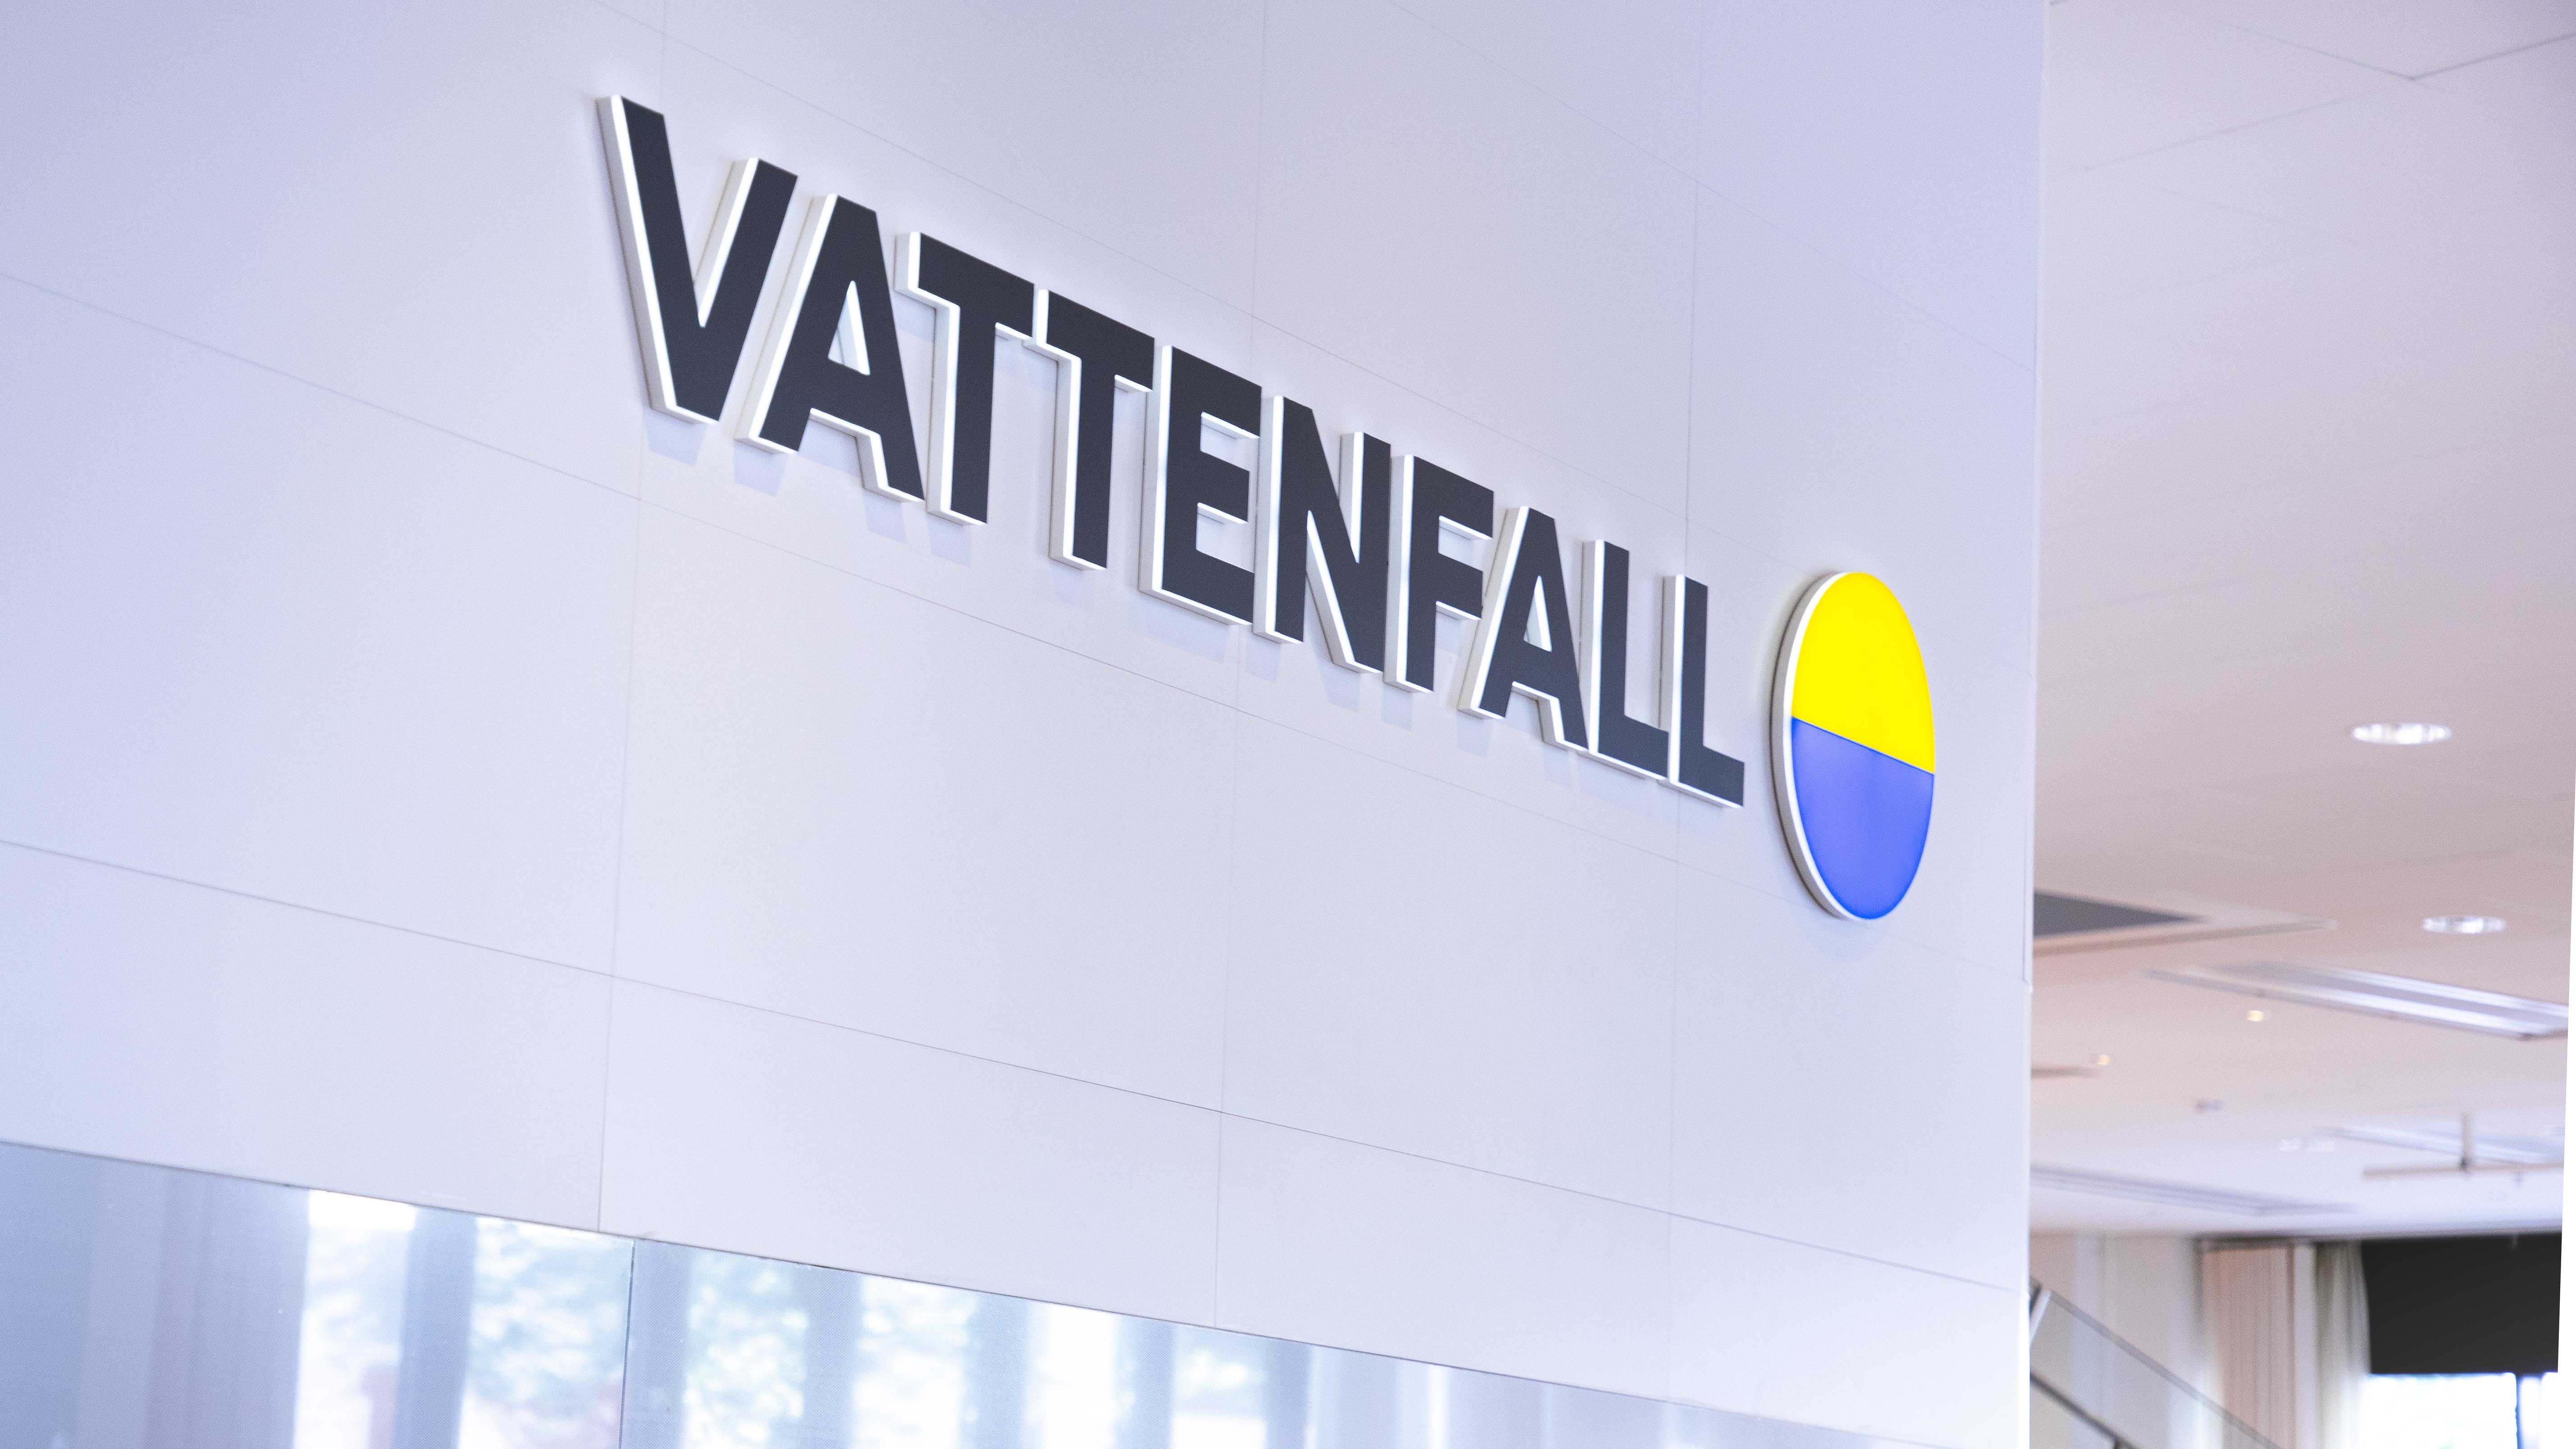 A Vattenfall office with the logo